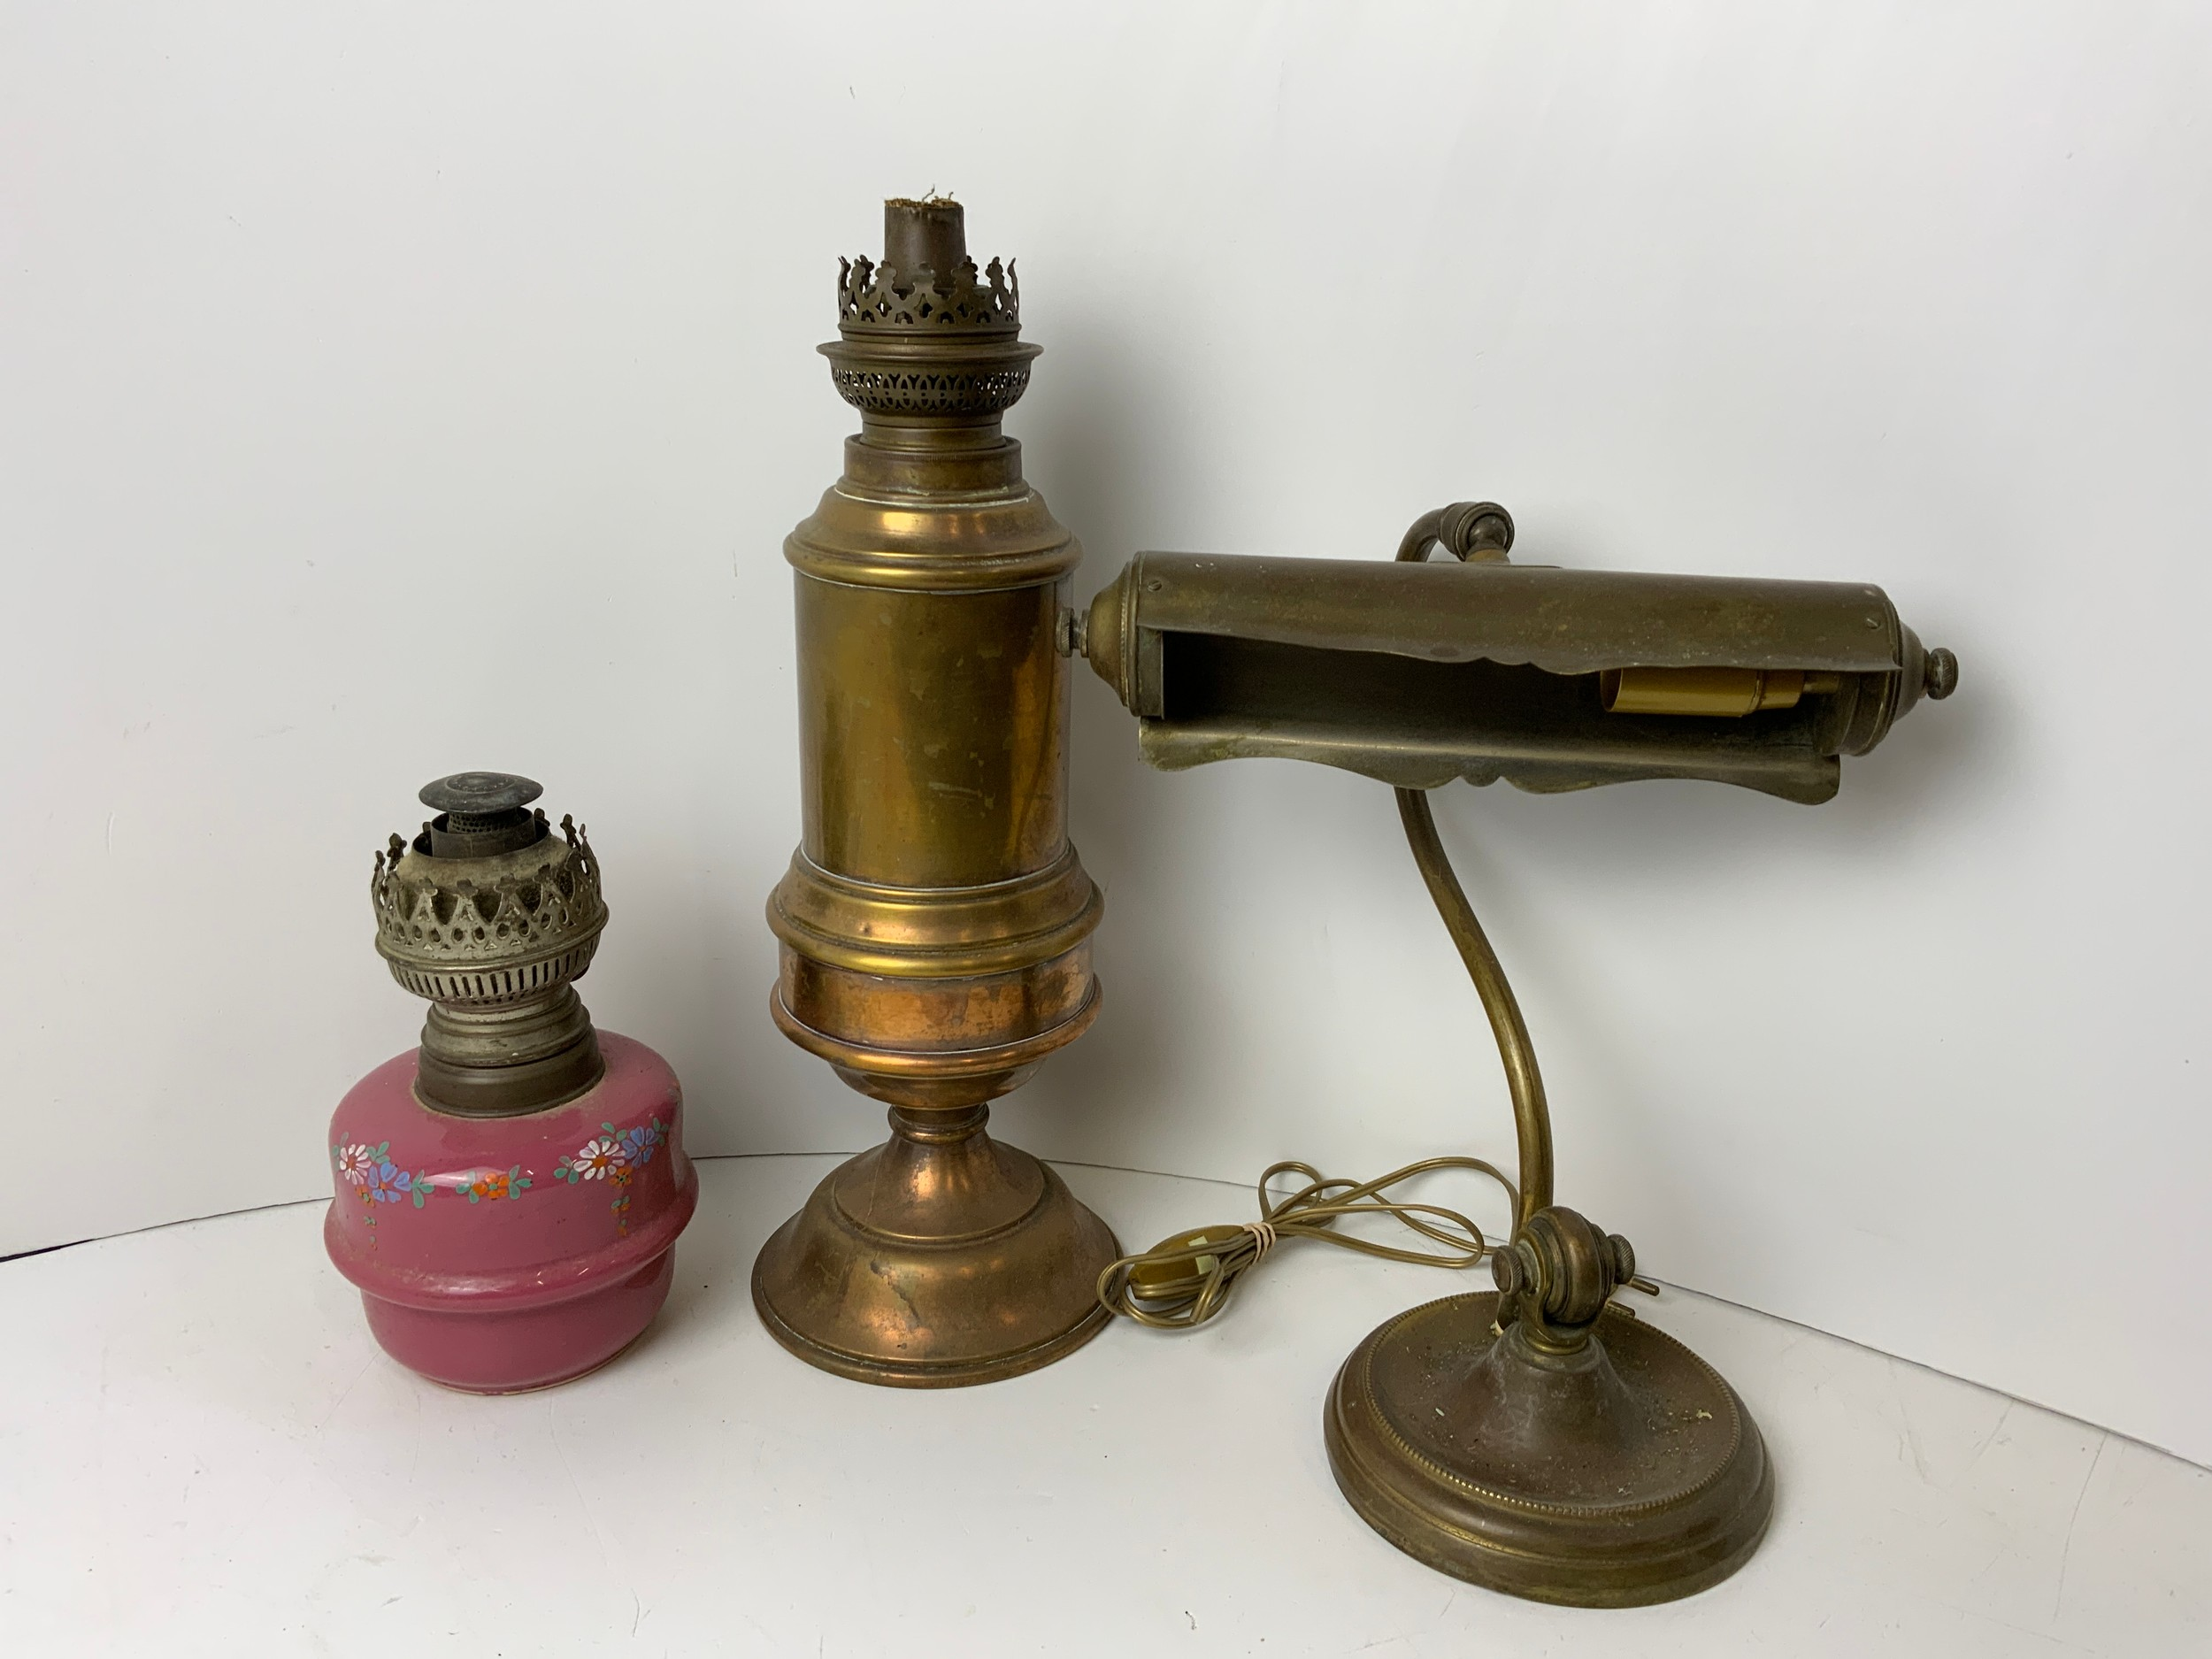 Vintage Bankers Lamp and 2x Oil Lamps